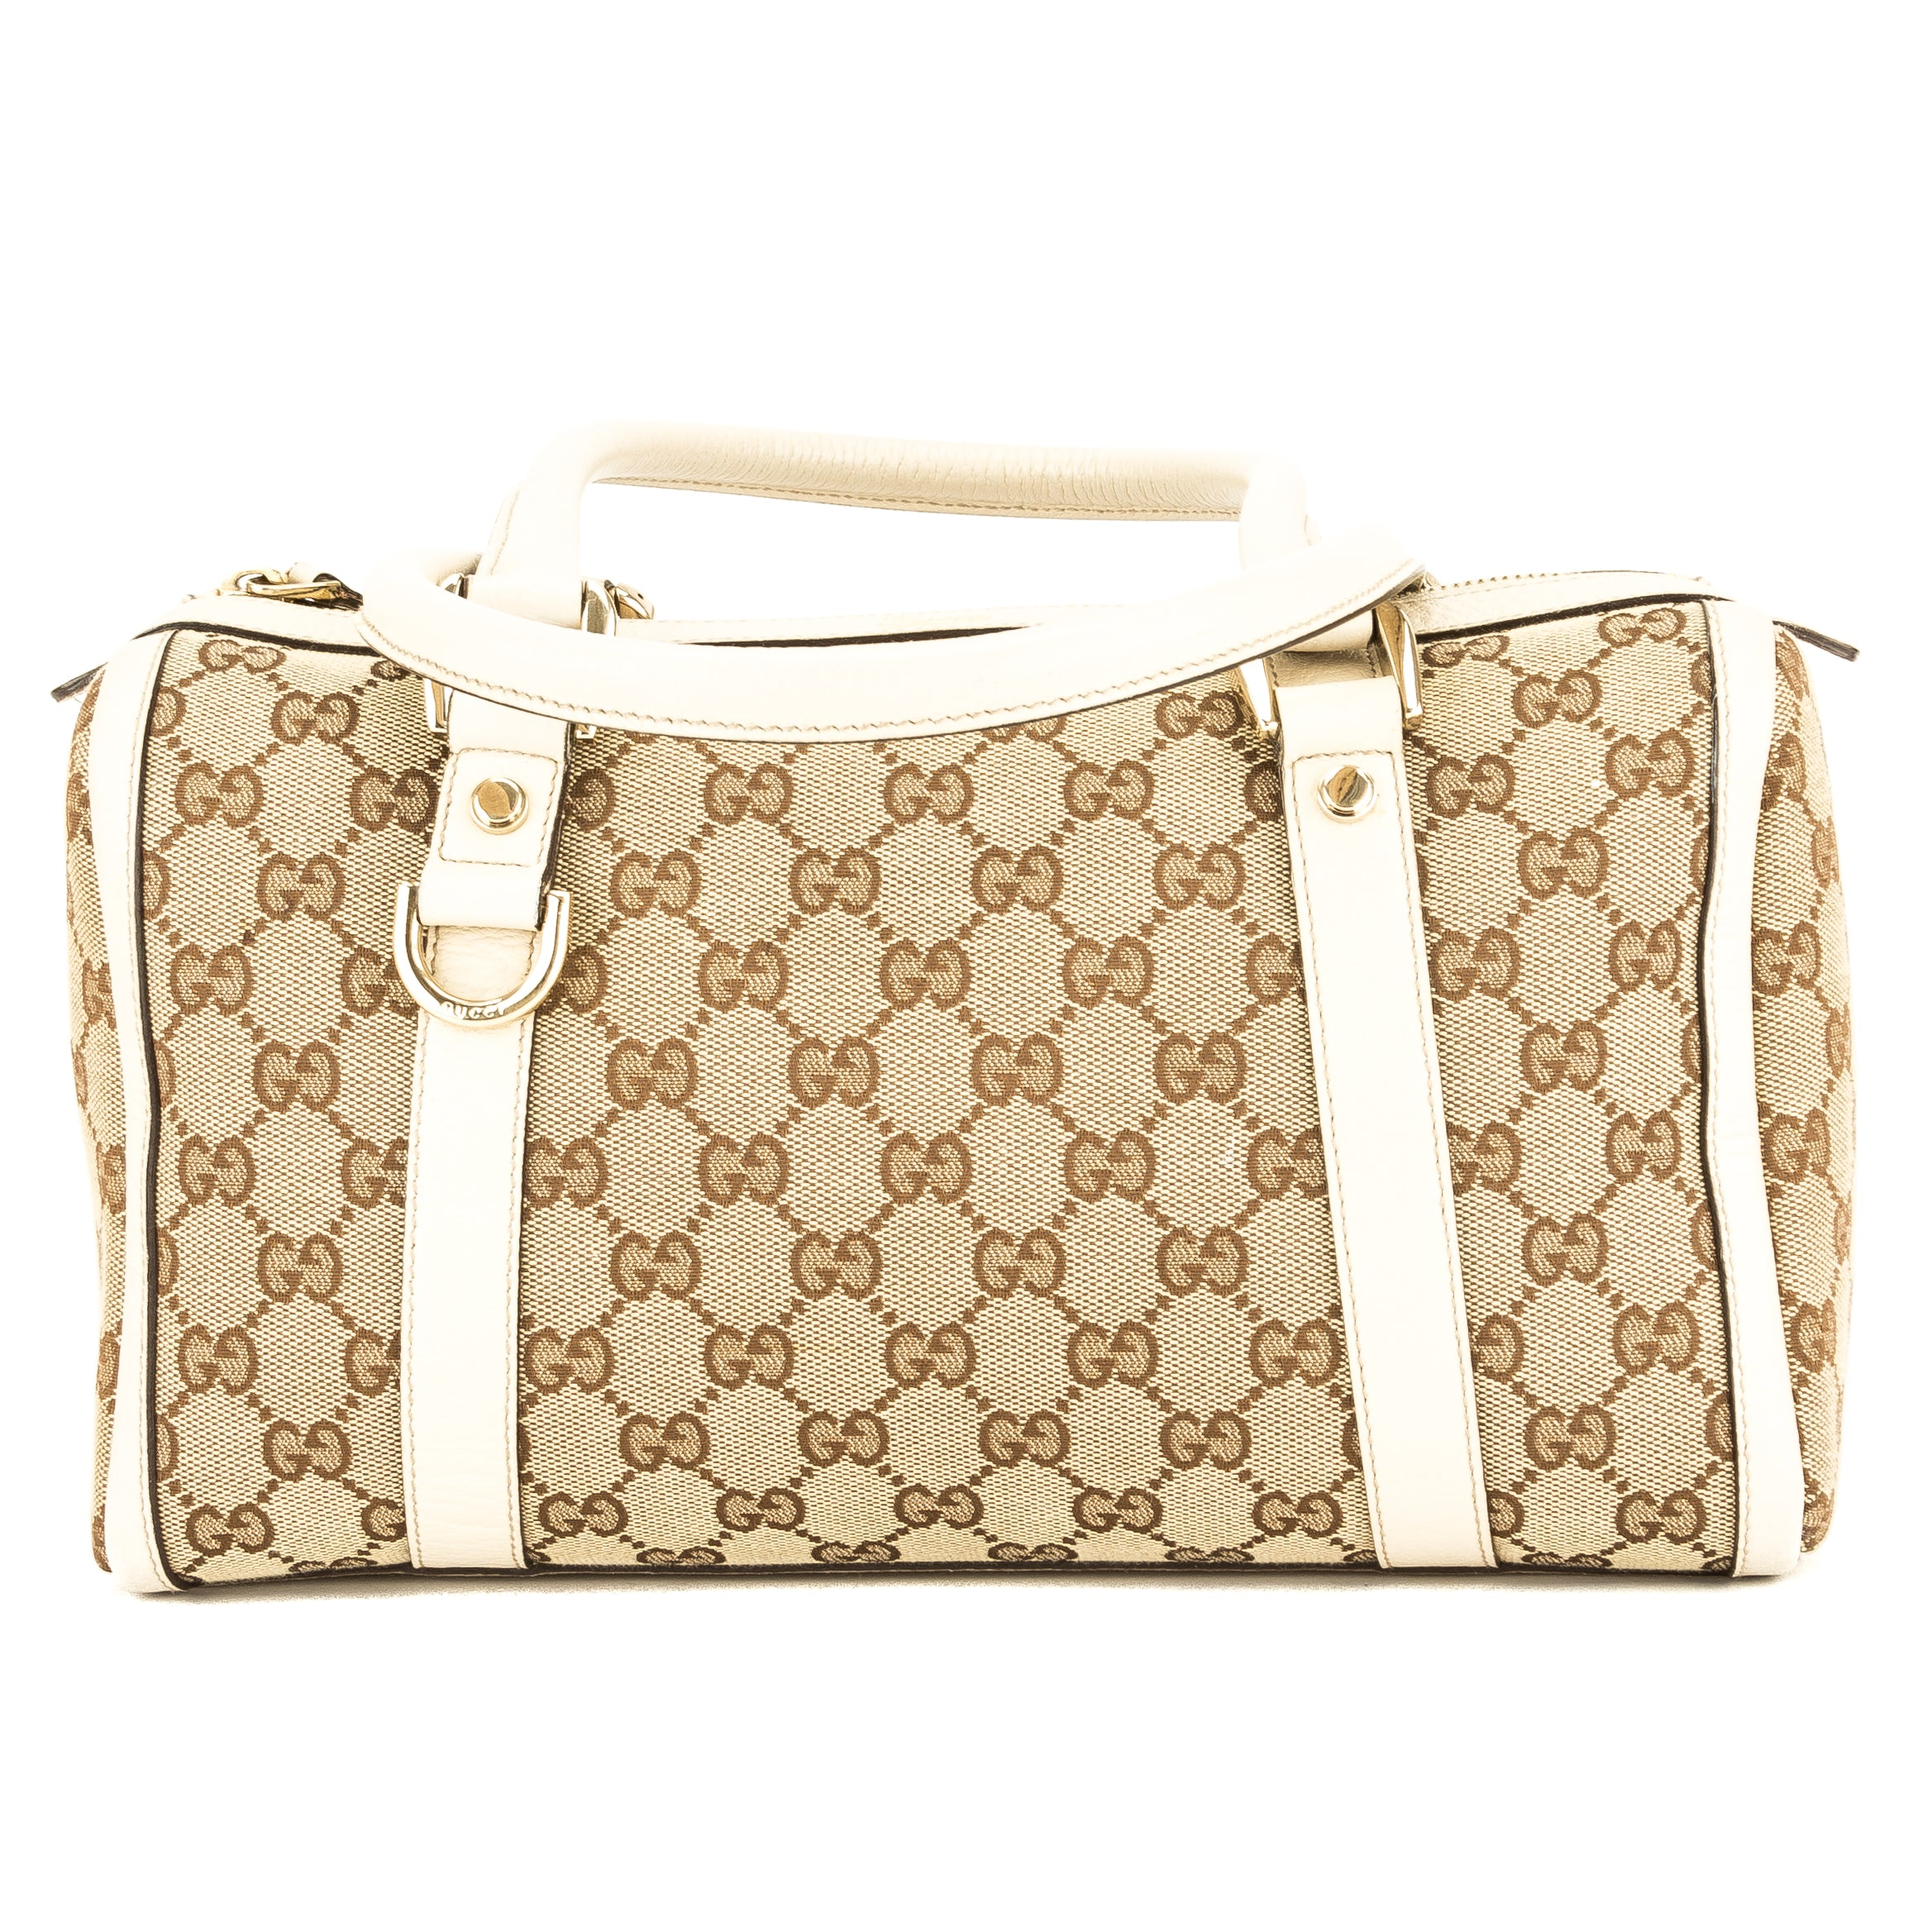 d635fded585 Gucci Ivory Leather GG Small Abbey Boston (3912017) - 3912017